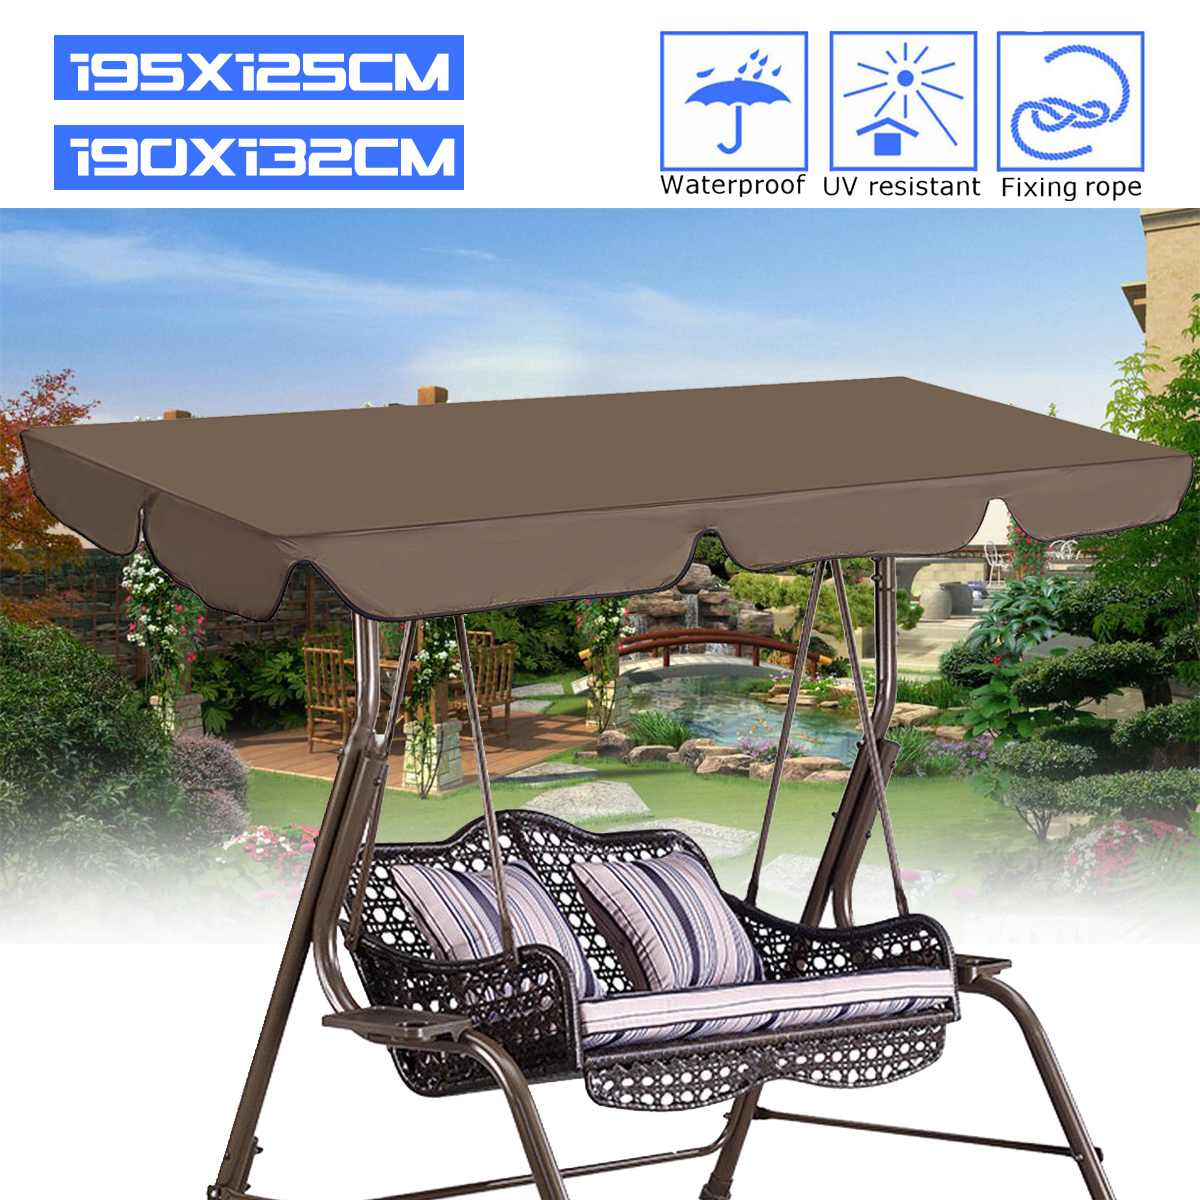 Summer Waterproof Top Cover Canopy Replacement For Garden Courtyard Outdoor Swing Chair Hammock Canopy Swing Chair Awning